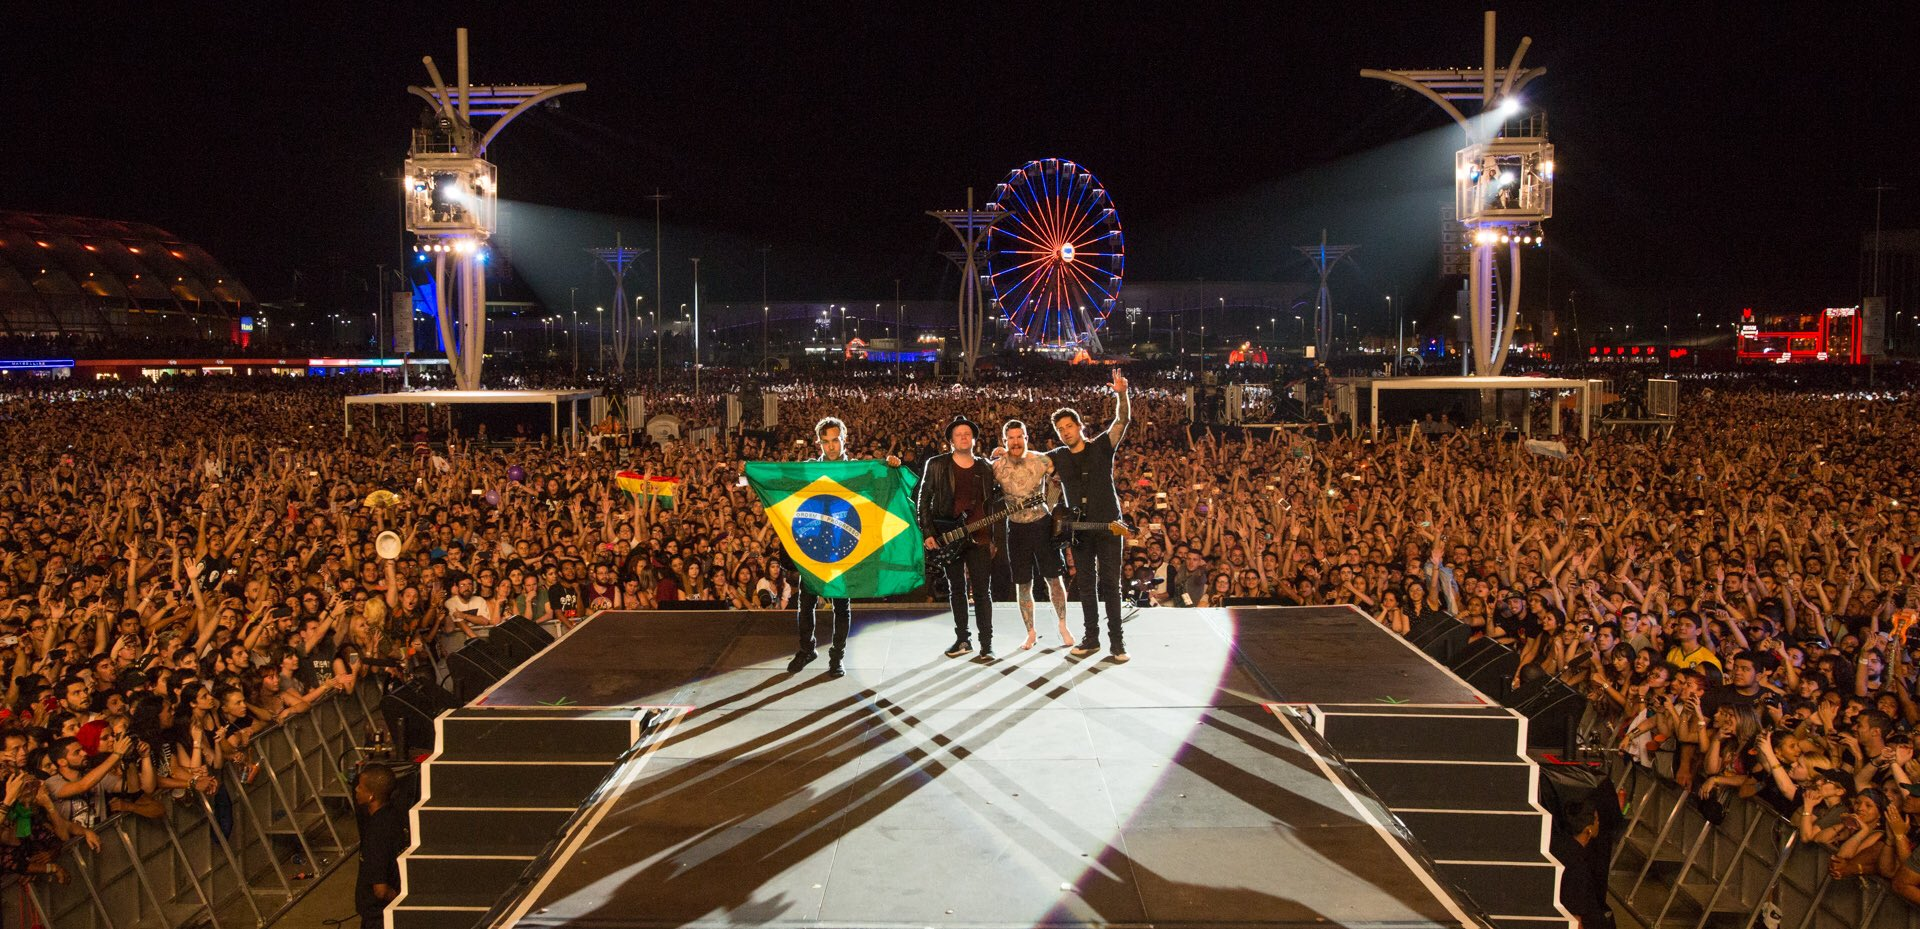 Obrigado Brazil ���� 9.21.17 @ Rock in Rio https://t.co/yf4Afn4nSu